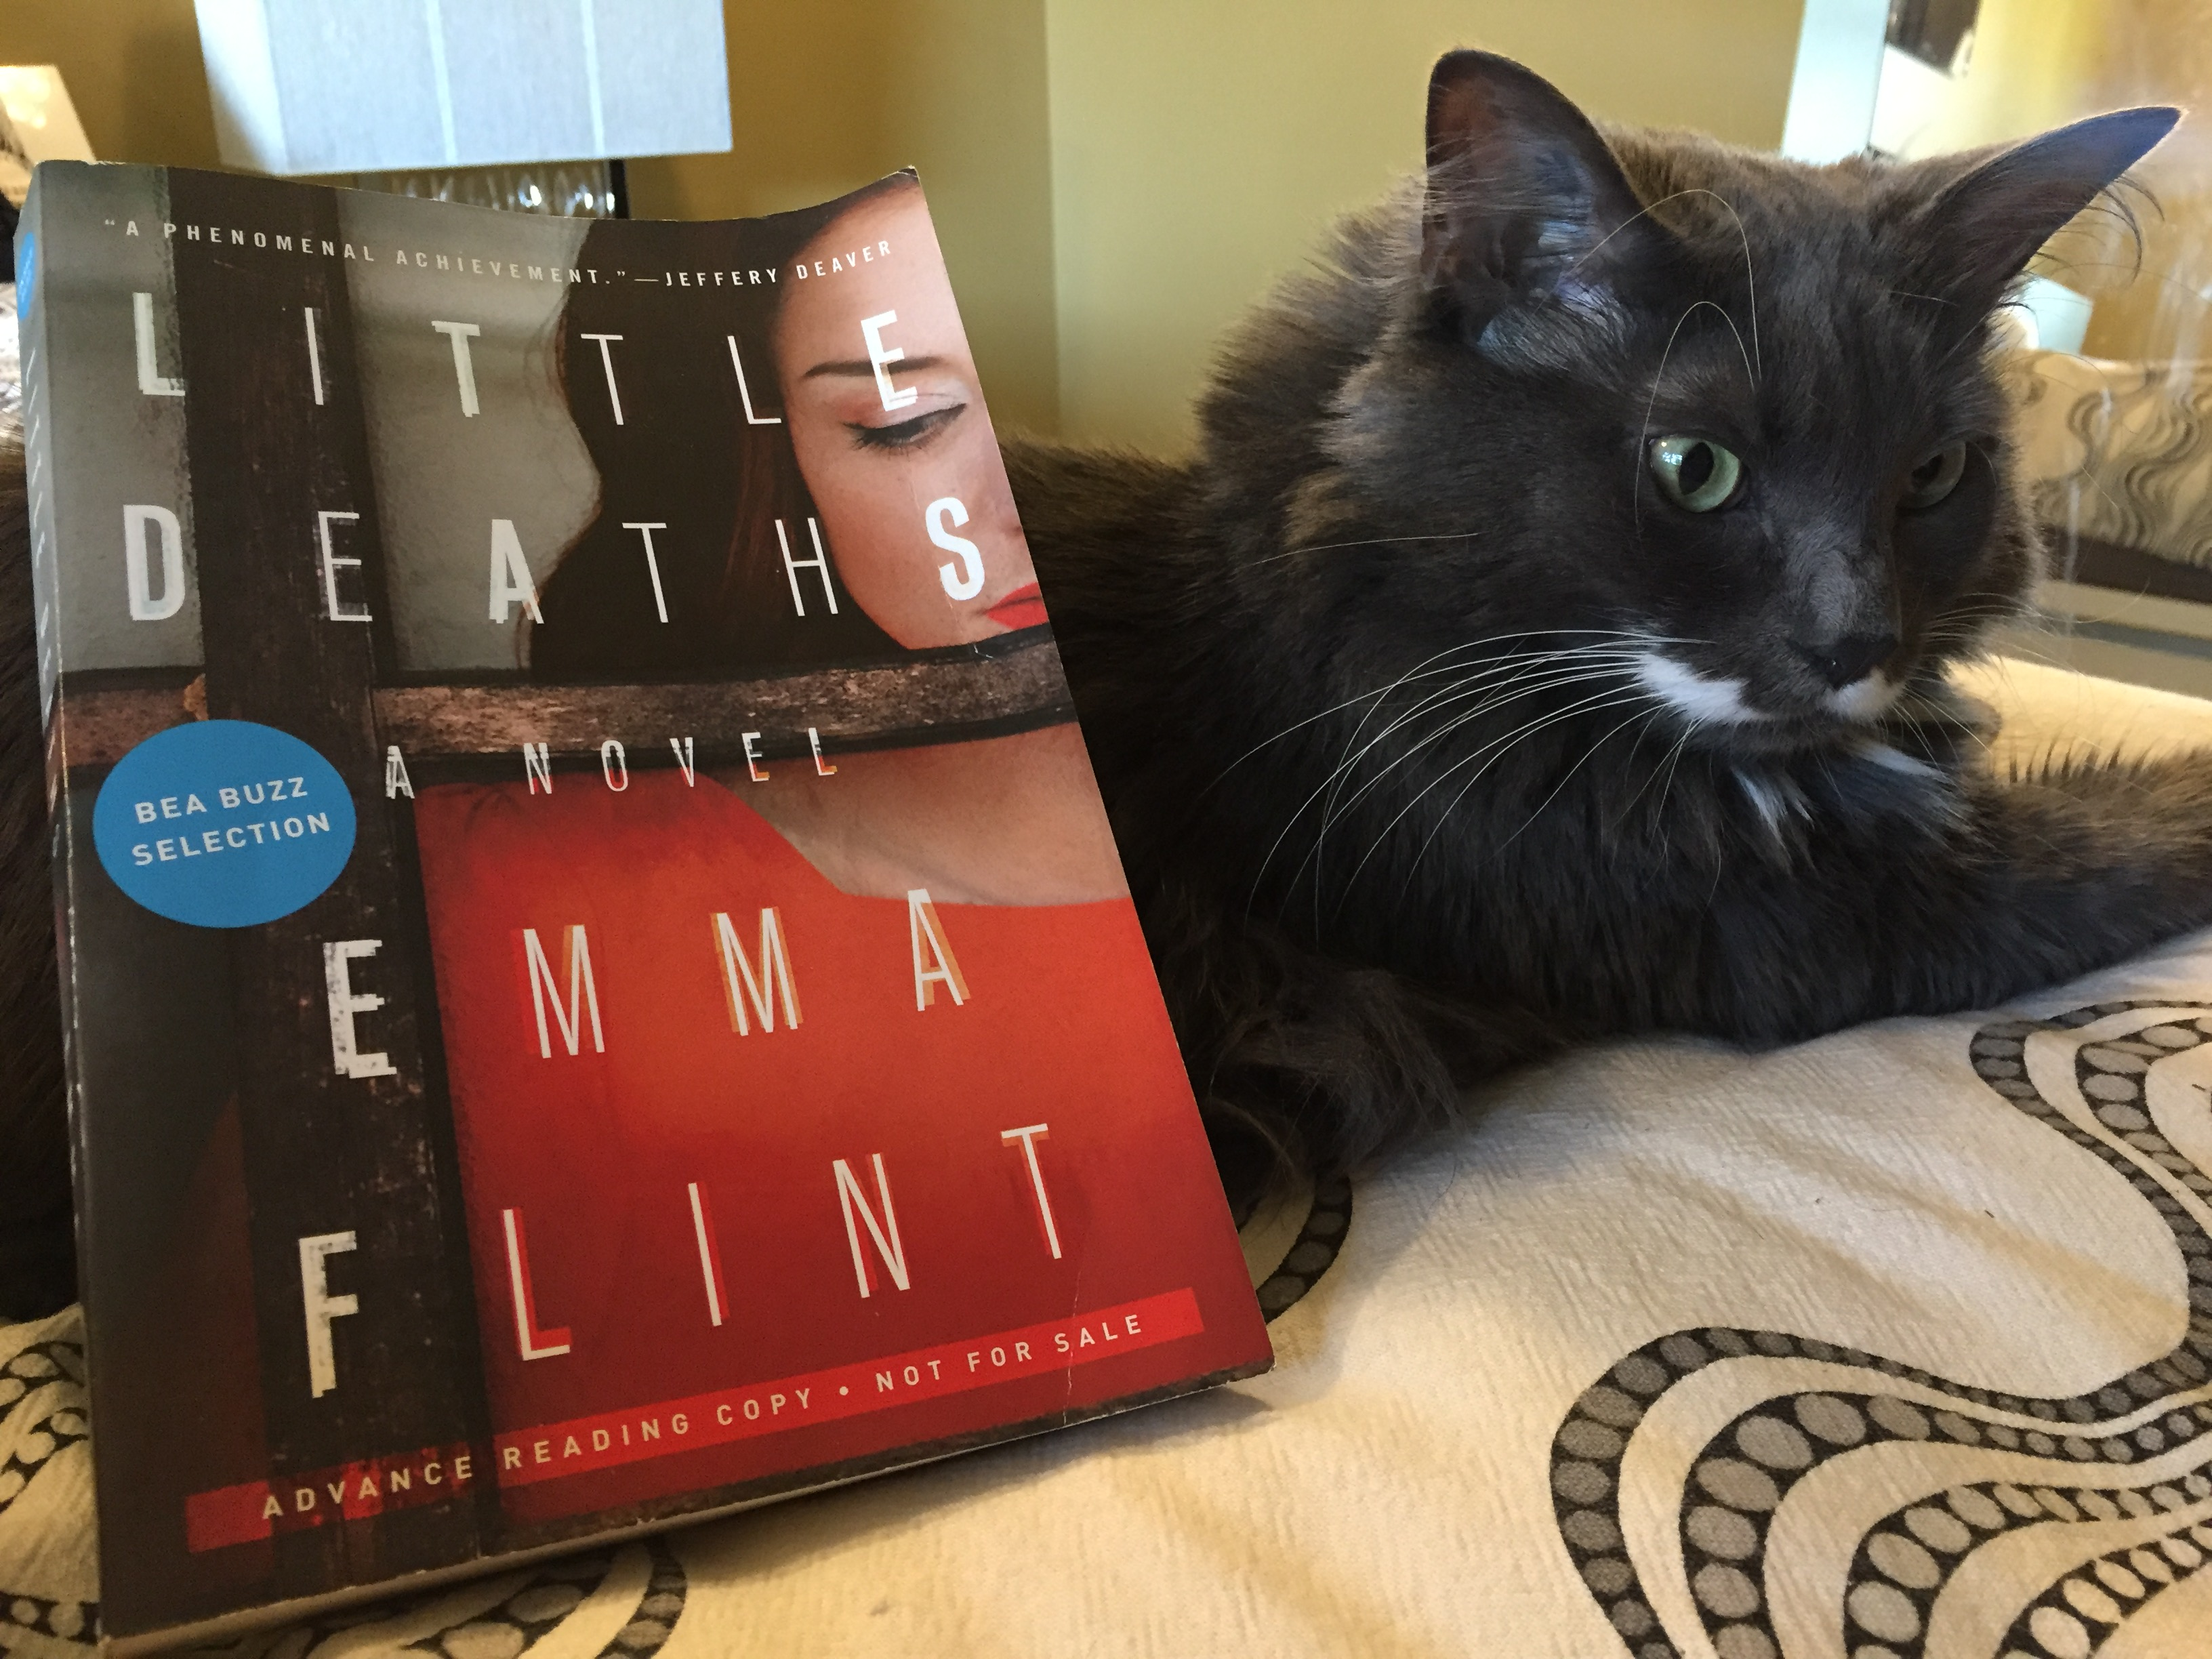 Book Review: Little Deaths by Emma Flint